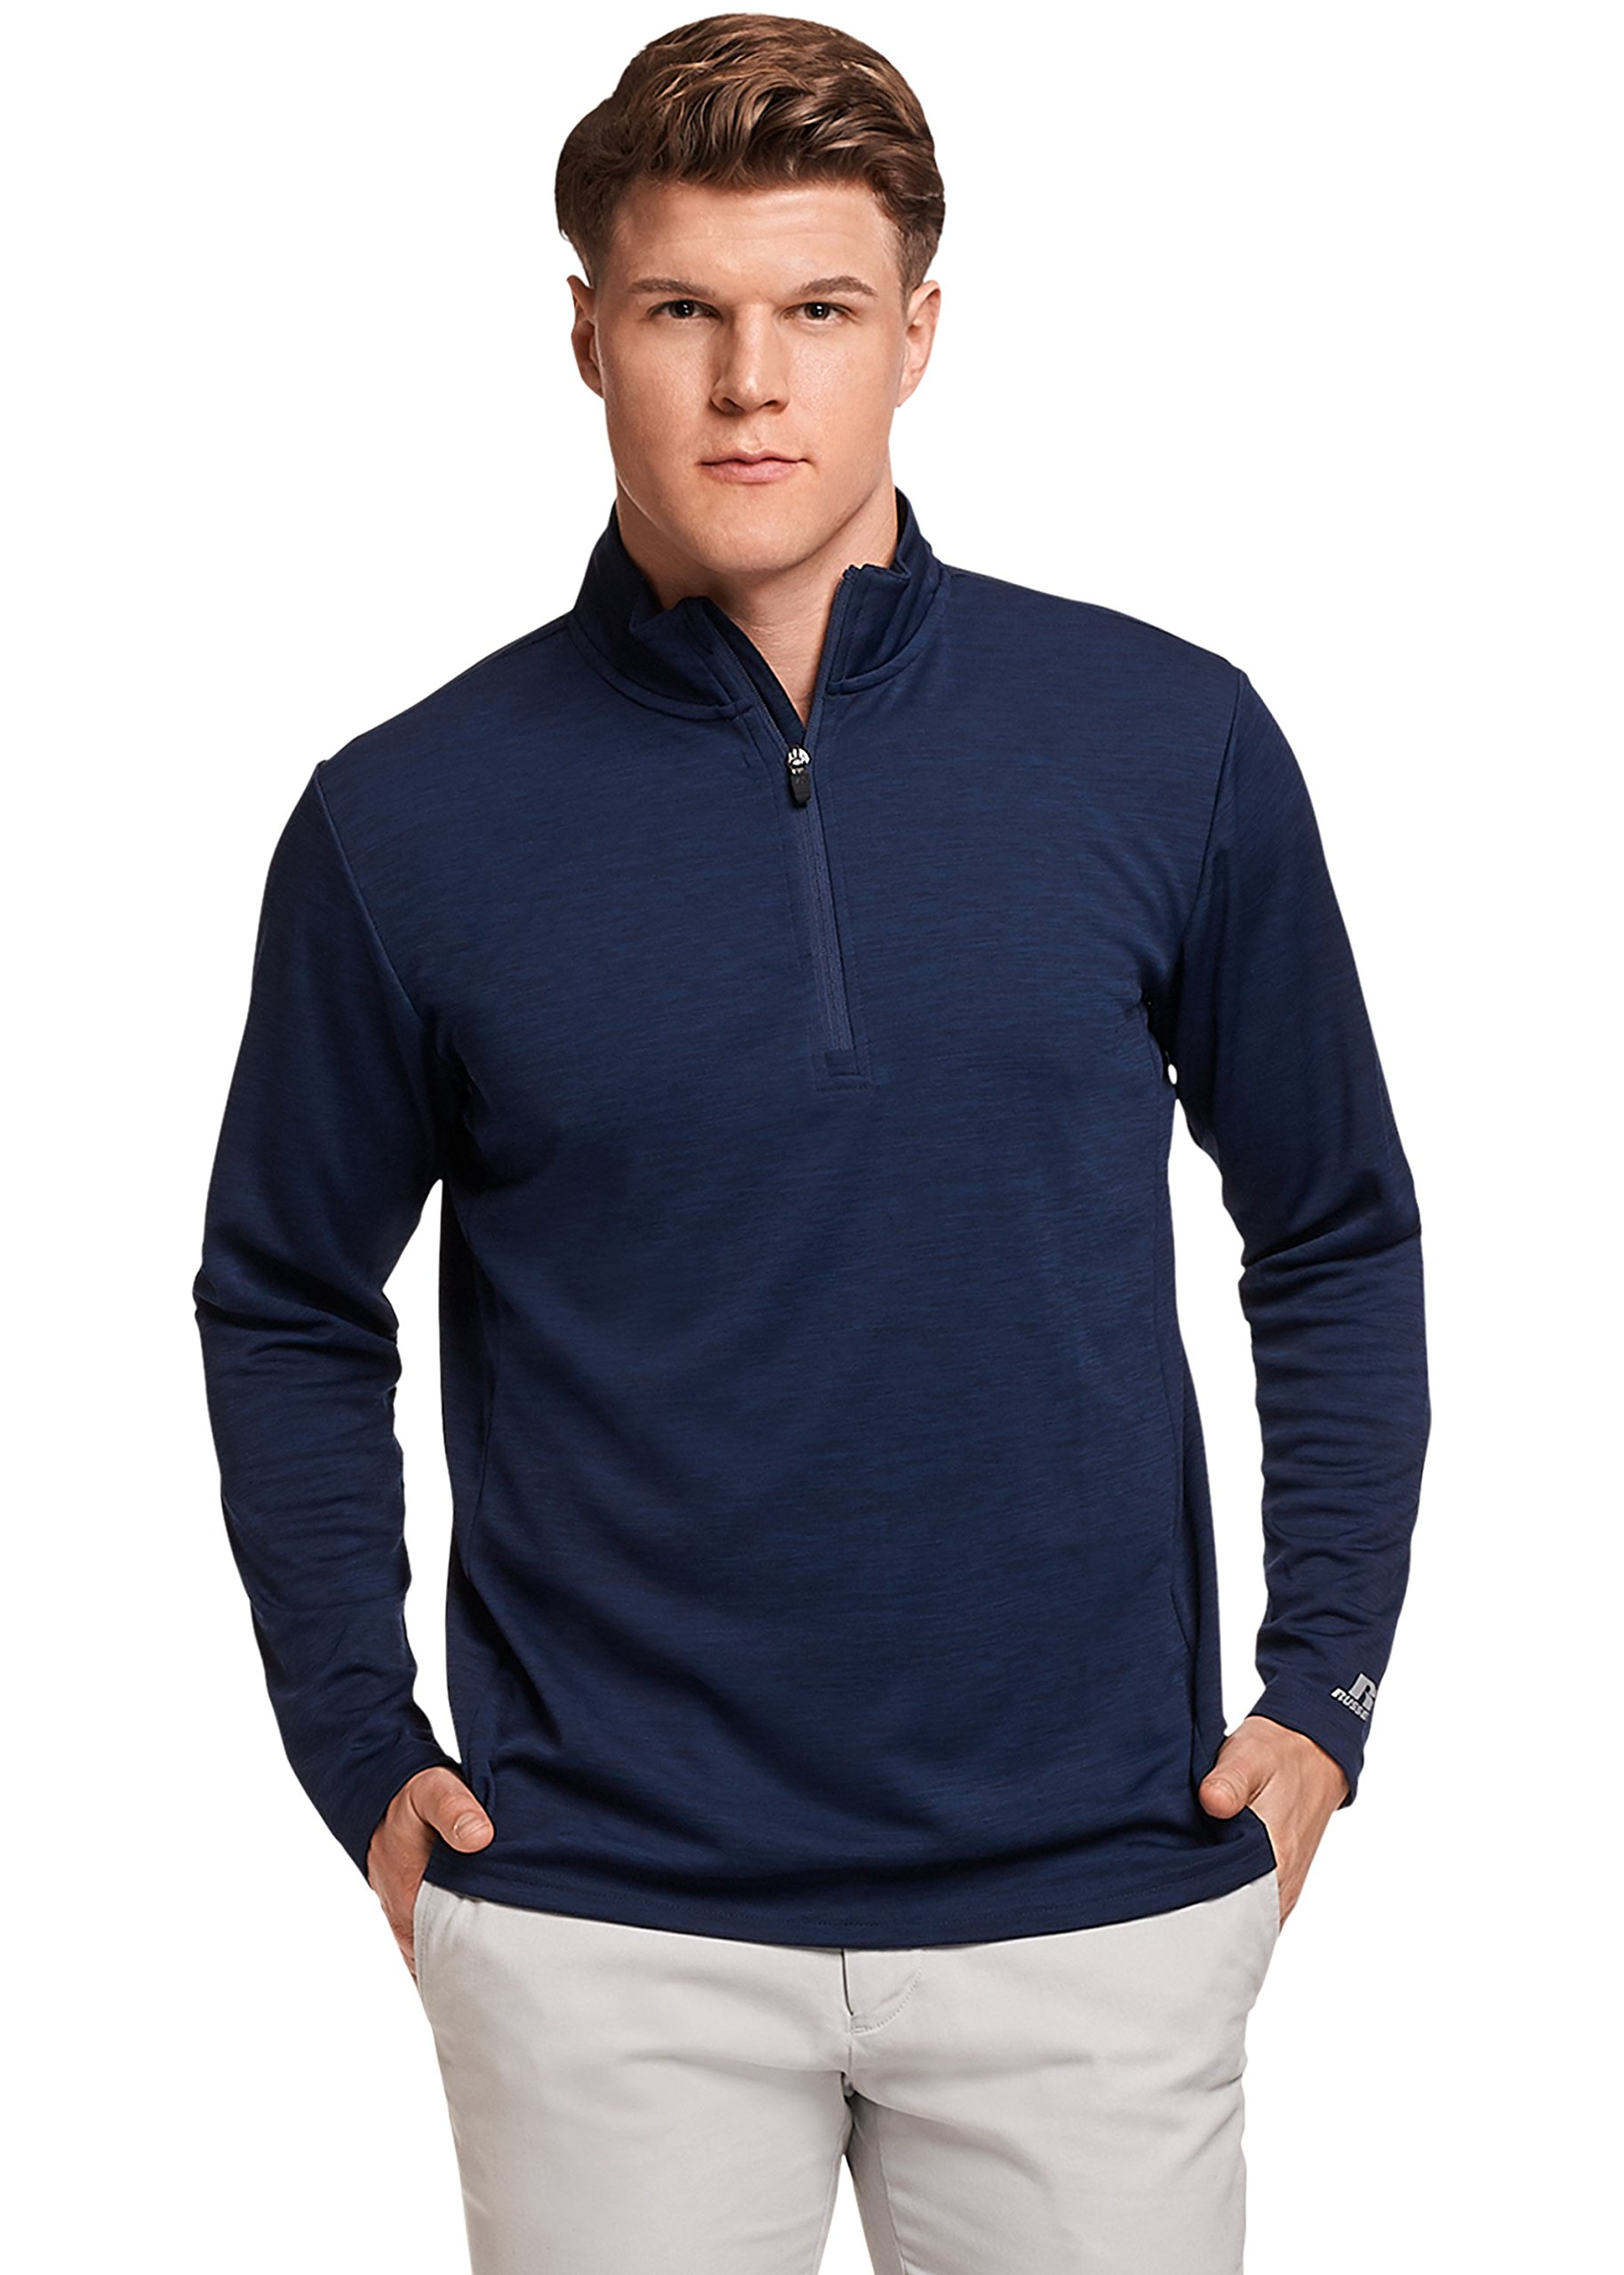 Russell Athletic Men's Lightweight Performance 1/4 Zip, Navy, XL by Russell Athletic